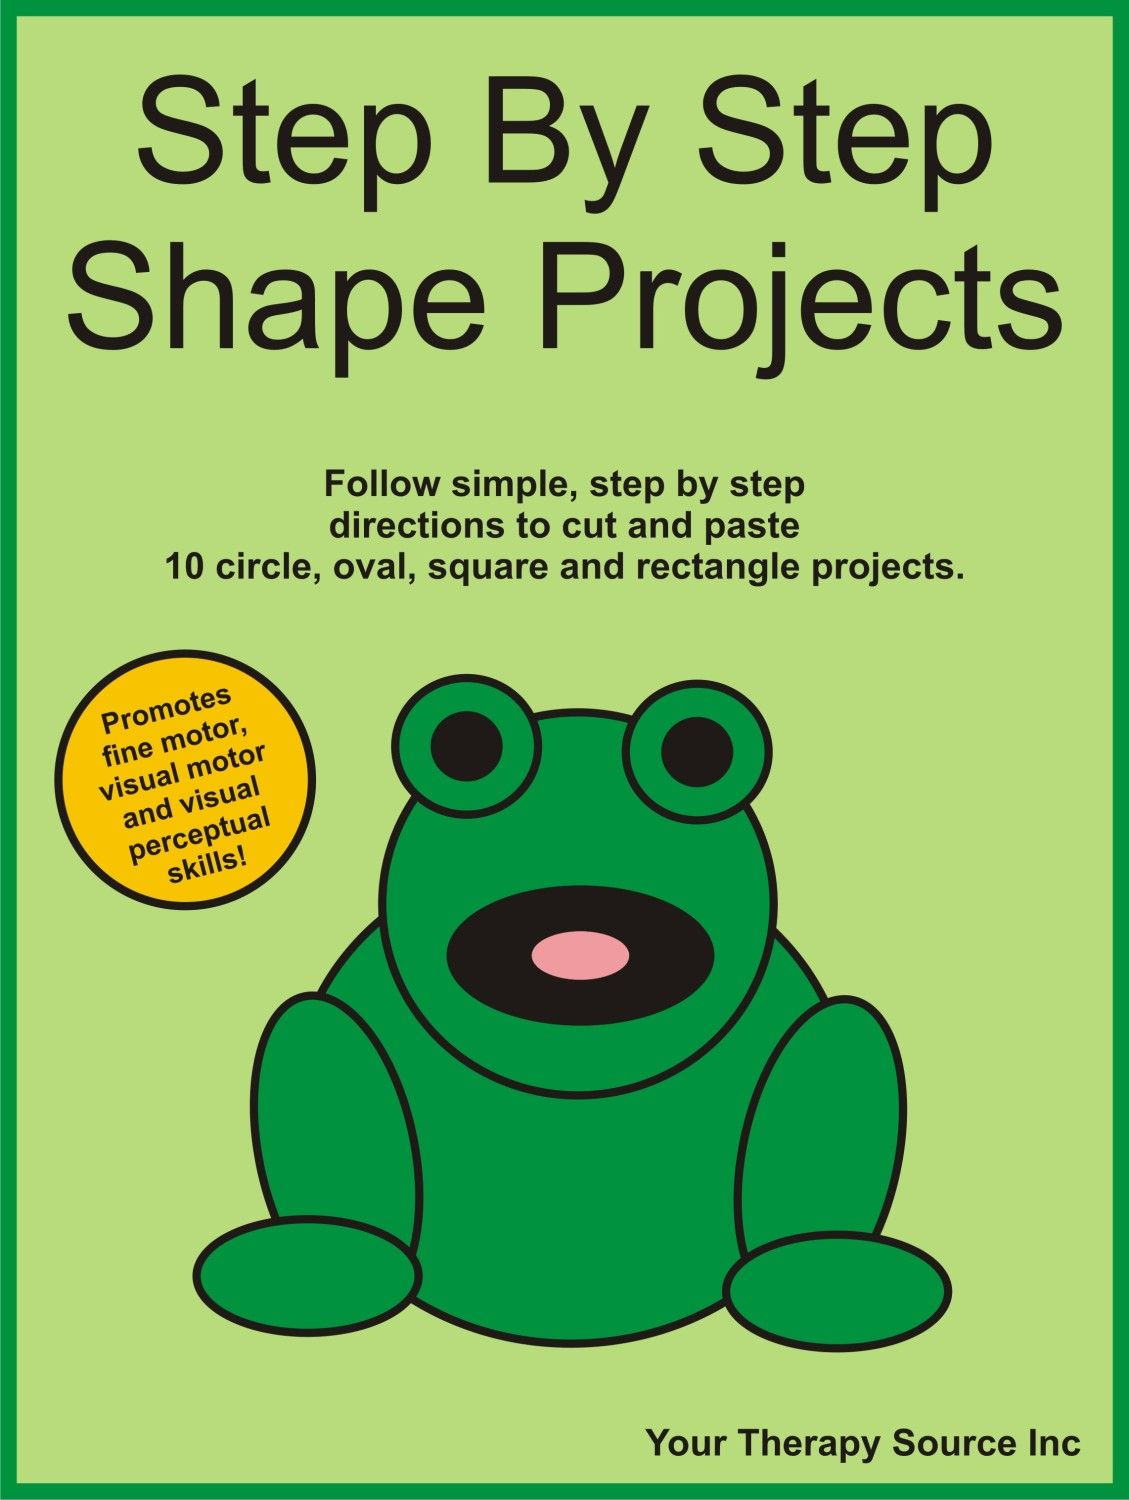 Step By Step Shape Projects